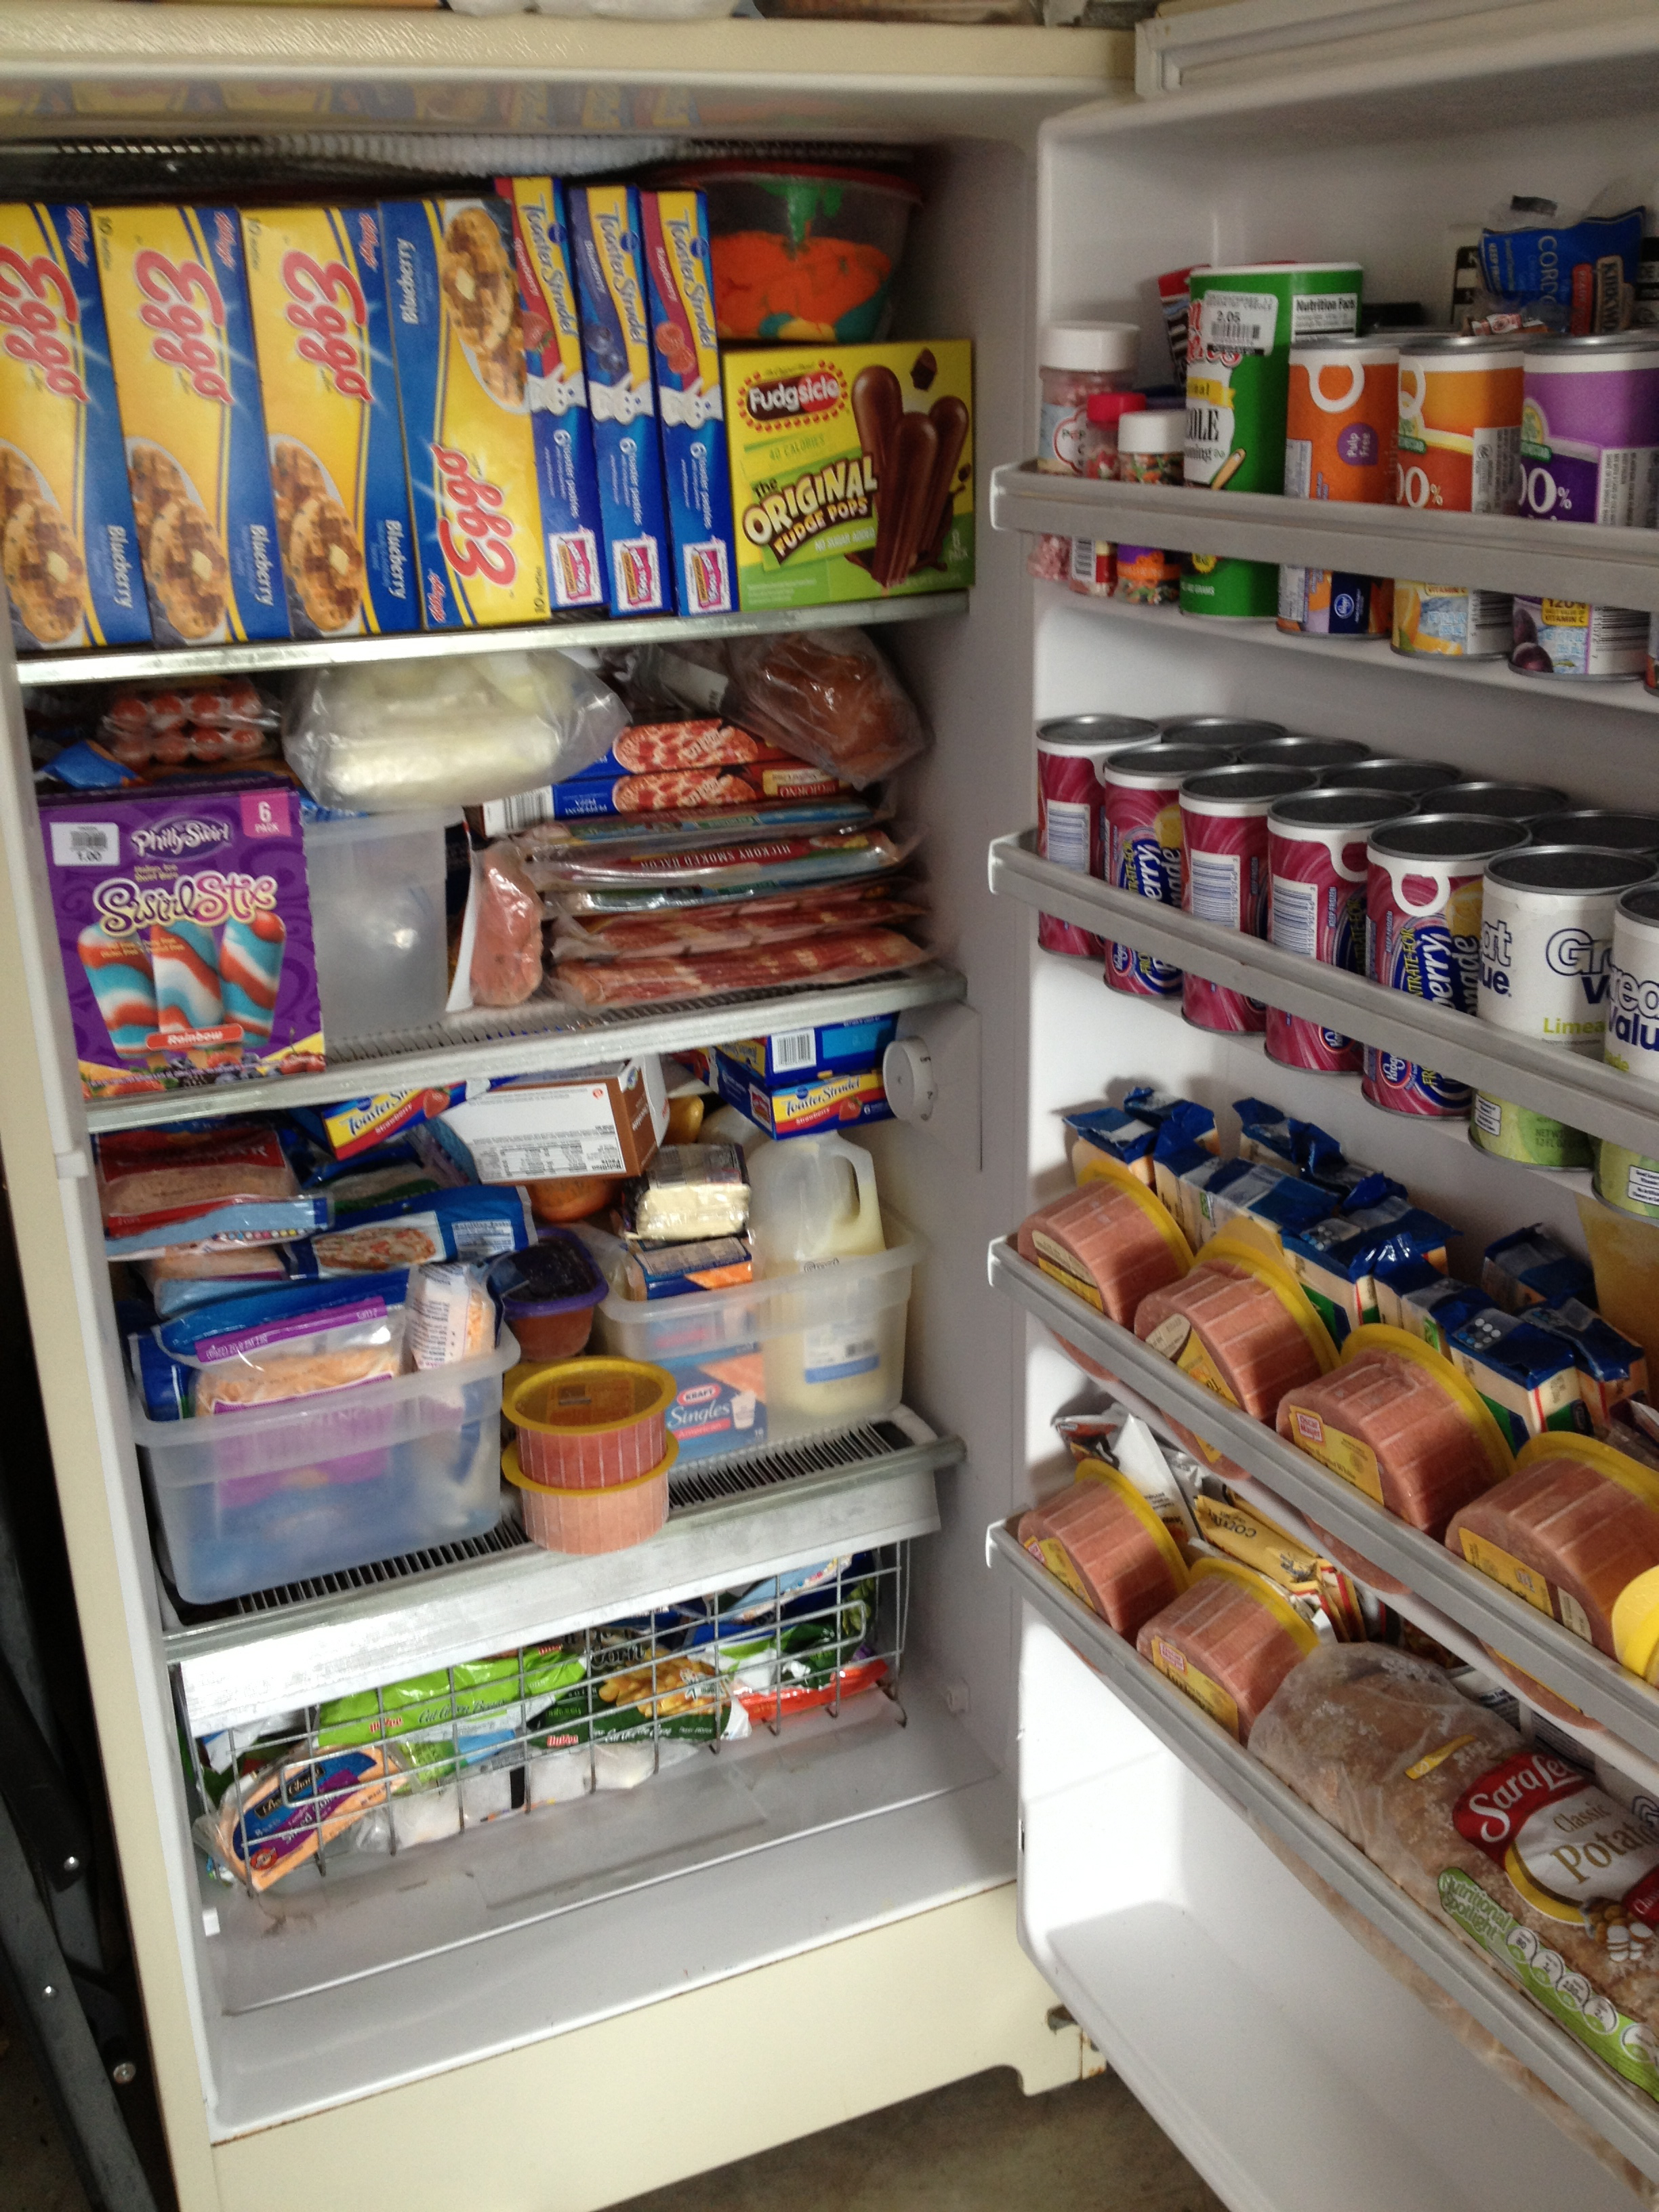 Organized home fantastic freezers andreabcreative The most organized home